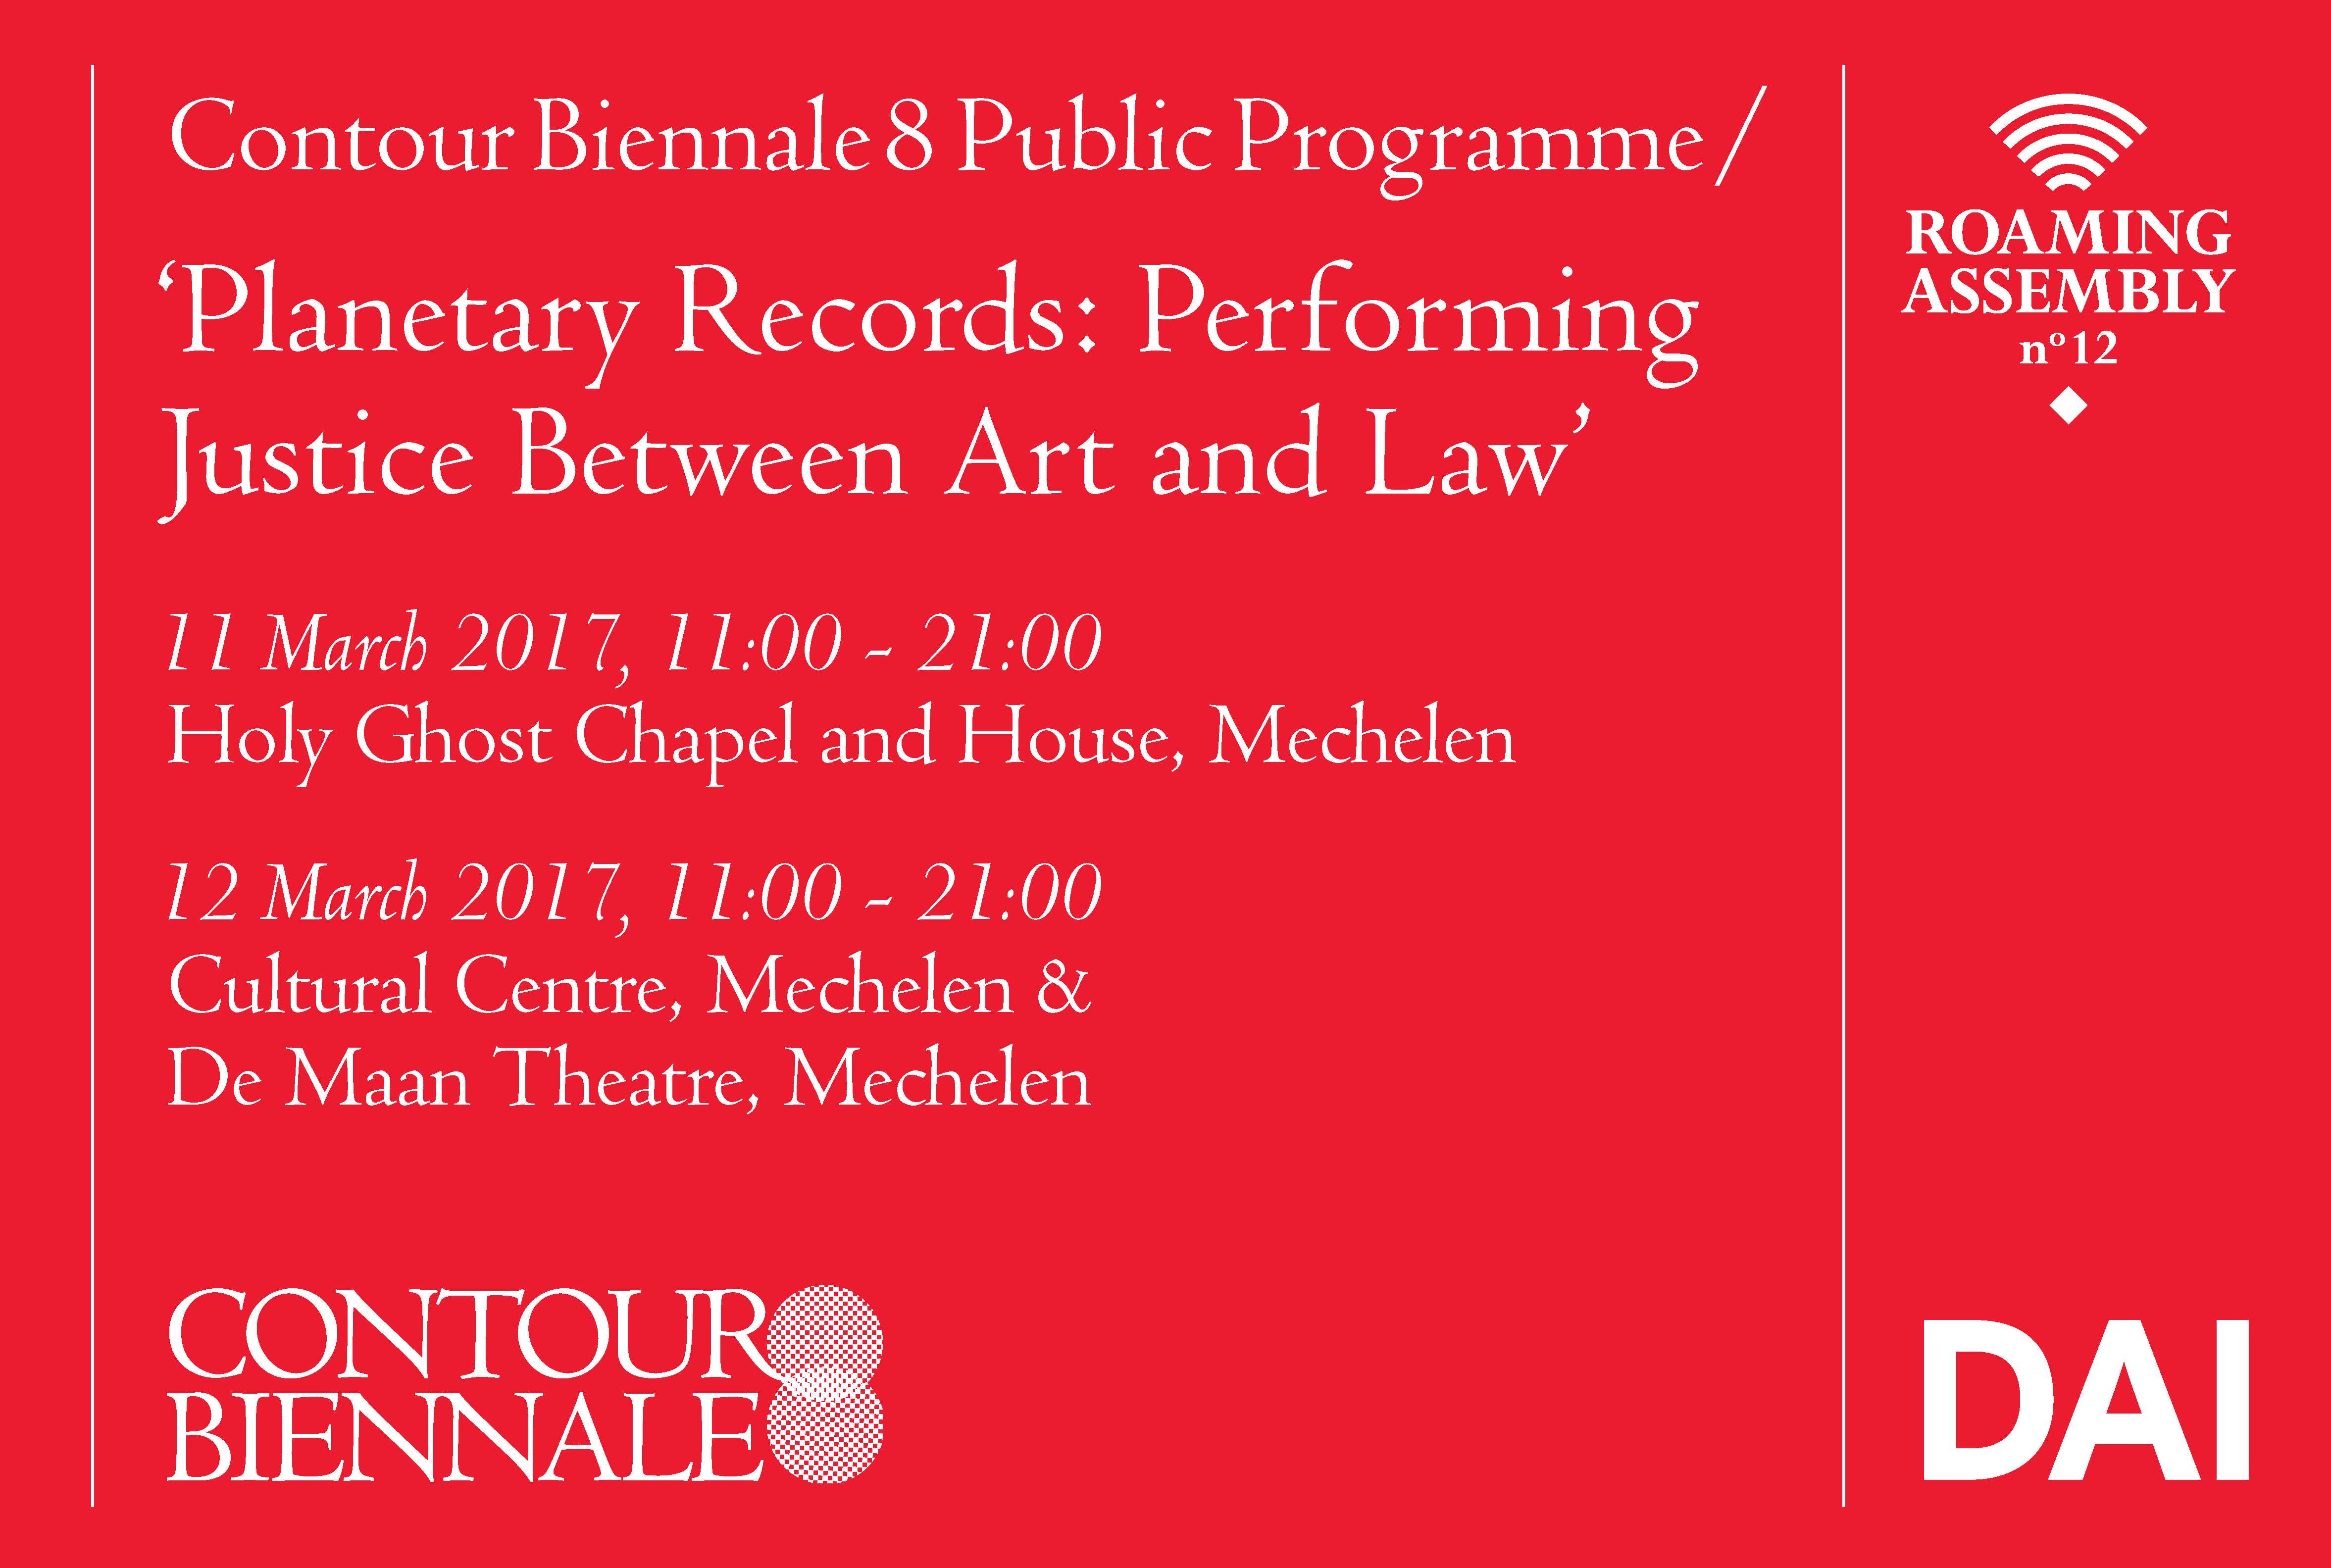 Planetary Records: Performing Justice Between Art and Law